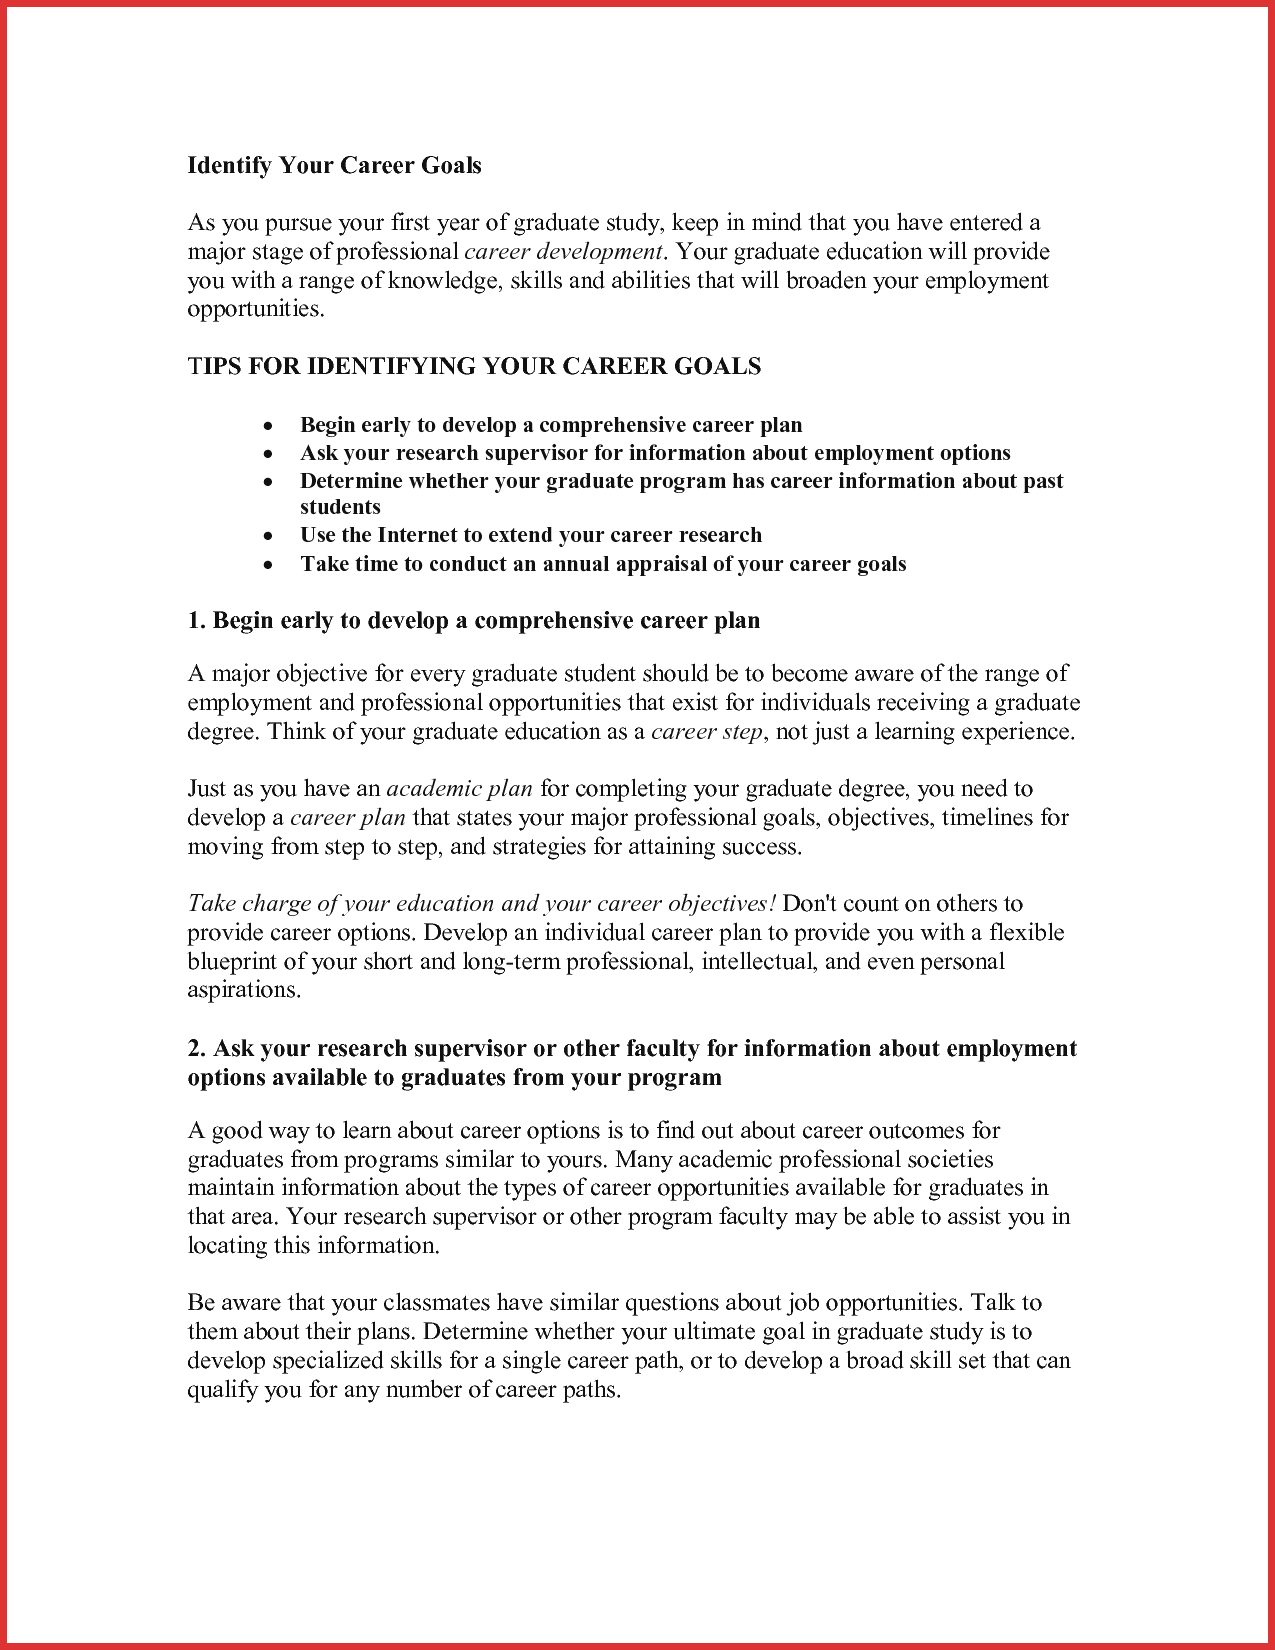 027 Educational And Career Goals Essay Example Goal Examples Unique Sample On Awesome Plans For Business Future Full